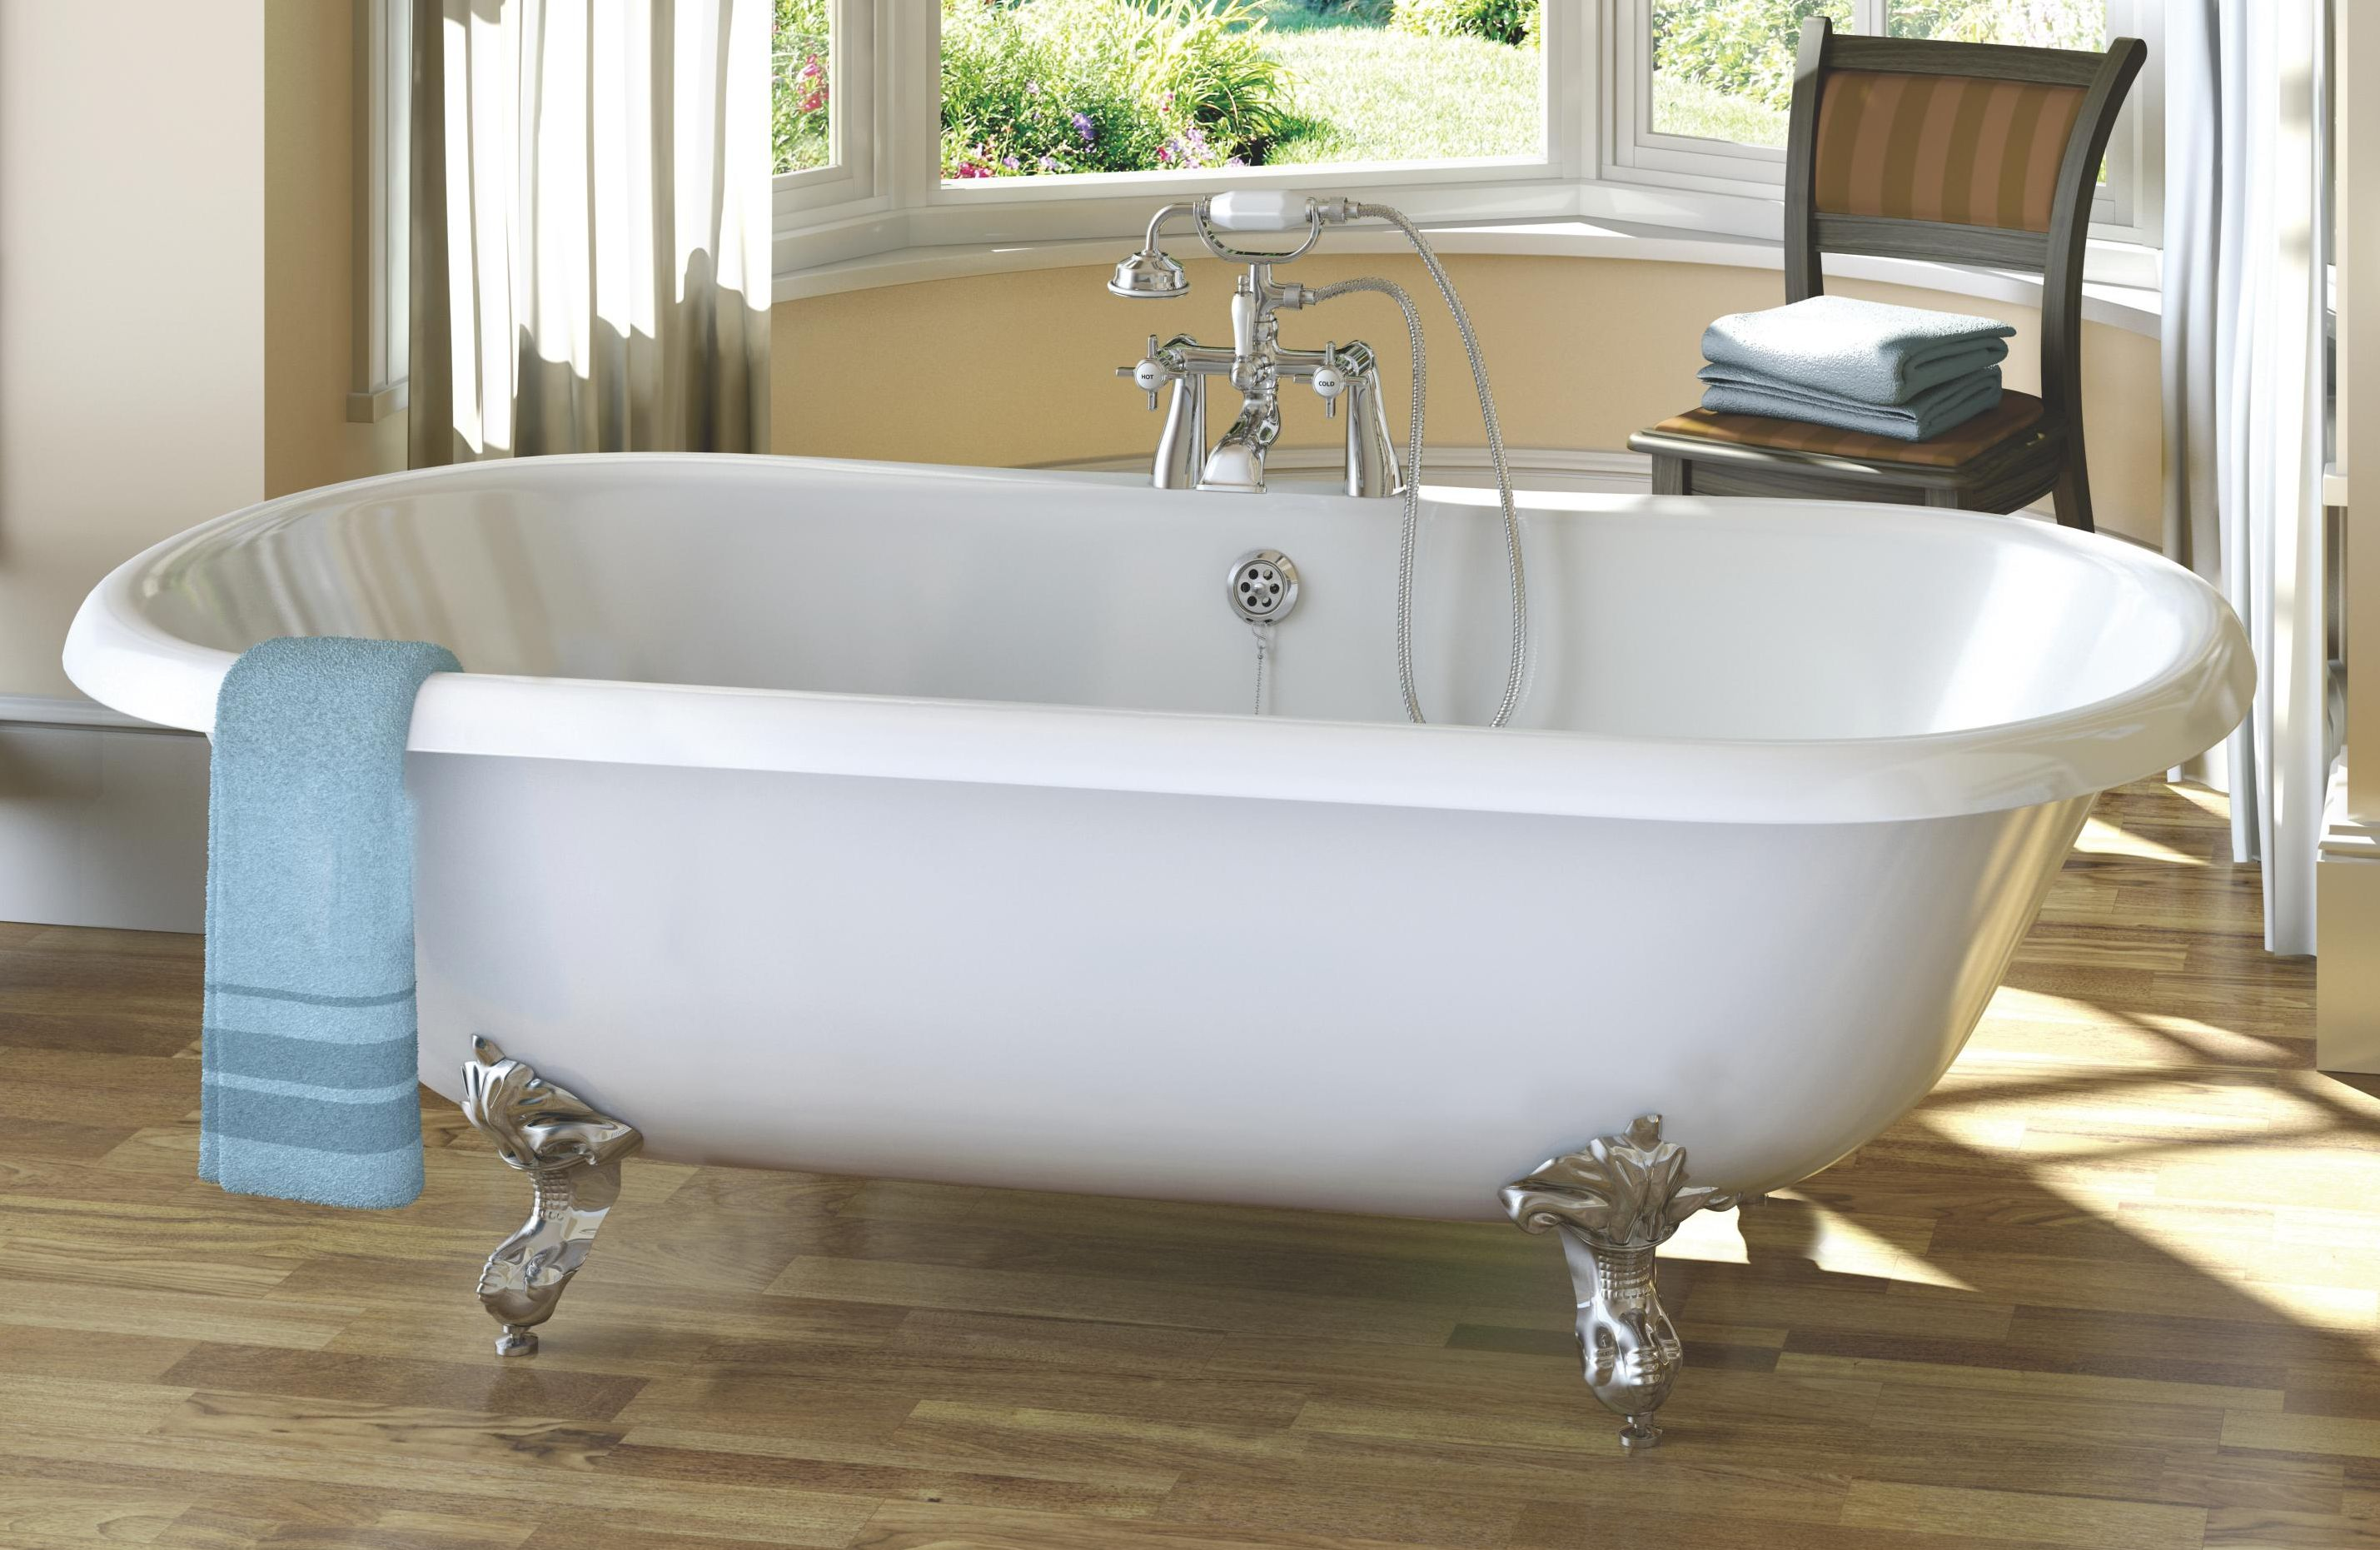 Buyer's Guide To Baths